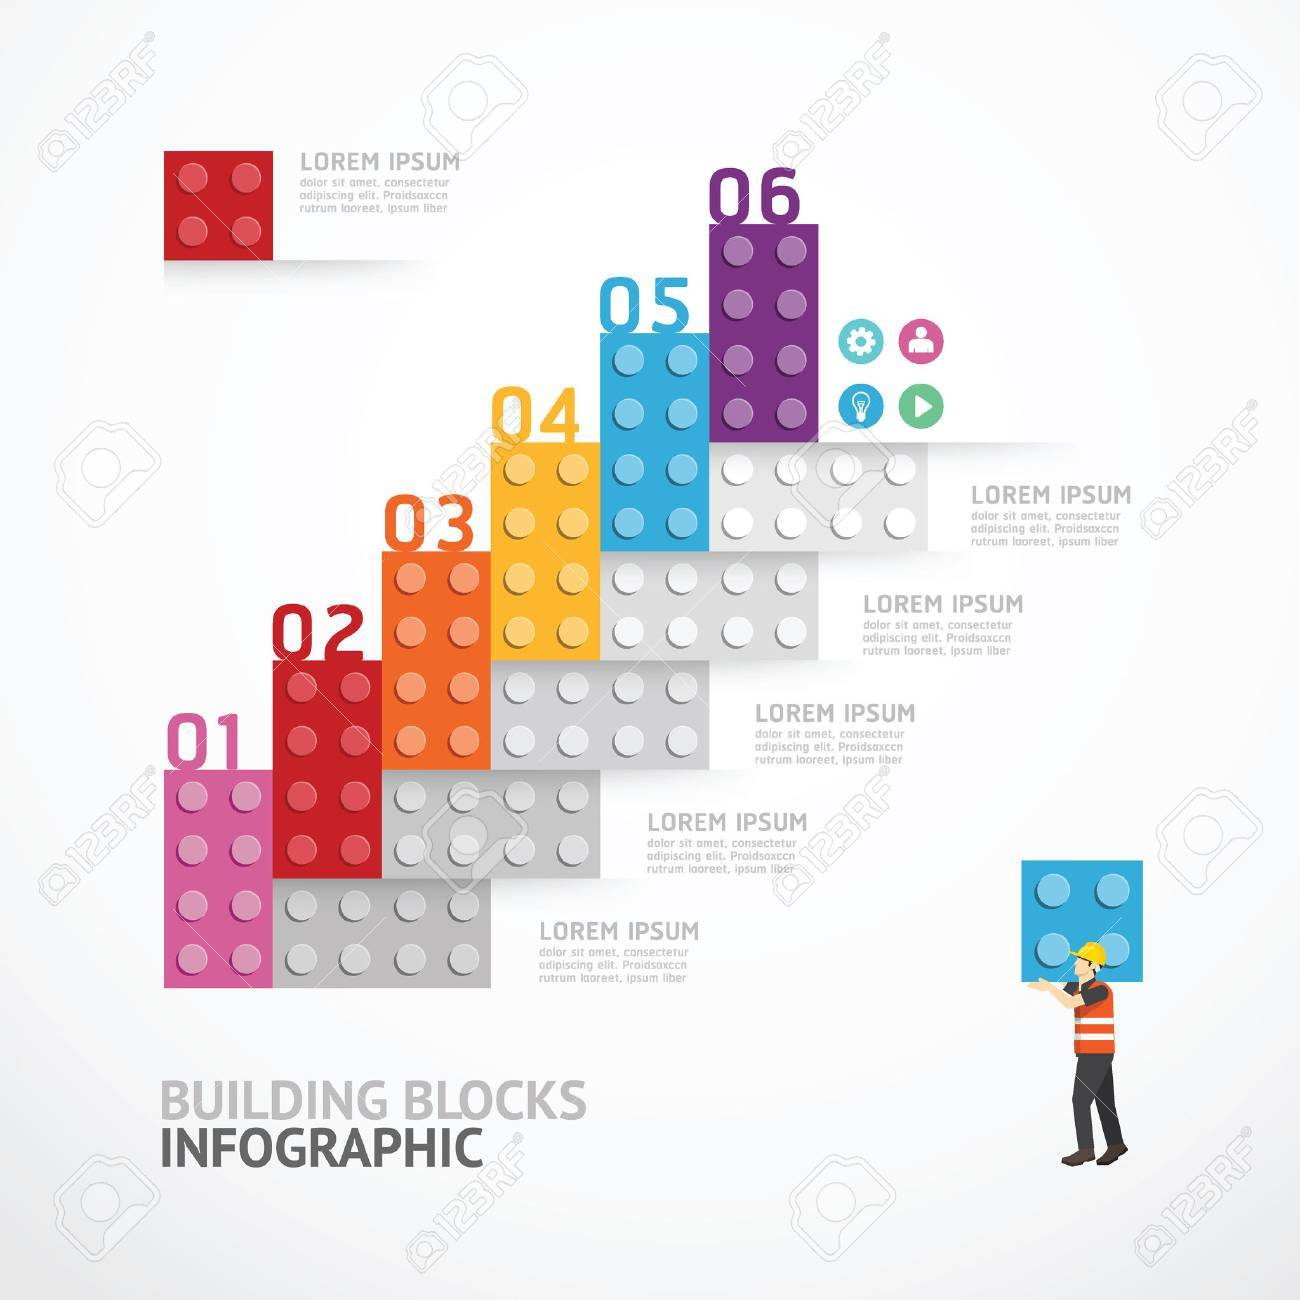 infographic template step building blocks banner concept